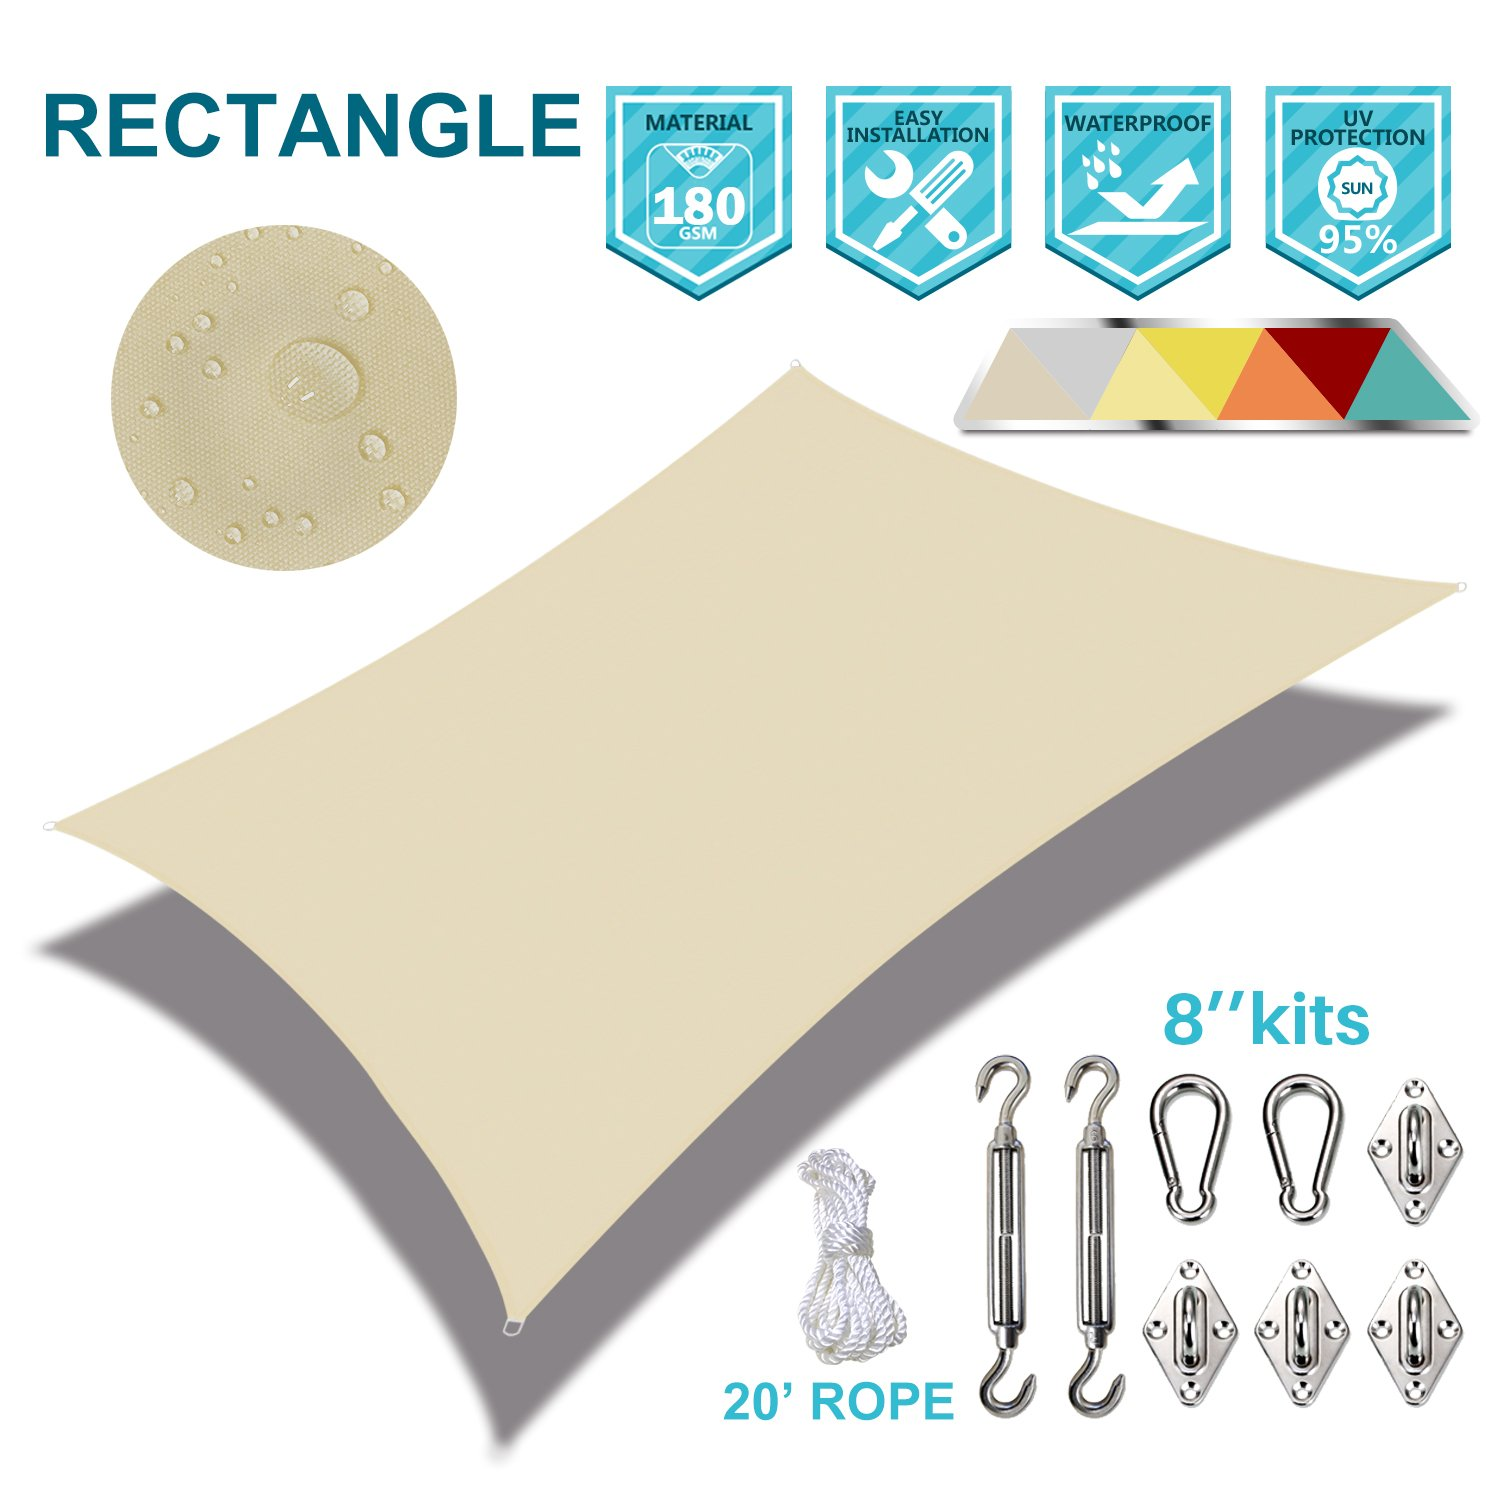 Coarbor Waterproof 21'x24' Customized Sun Shade Sail Canopy Came with Hardware Kit Rectangle UV Block Polyester for Pergola Carport Awning Patio Yard- Make to Order-Beige